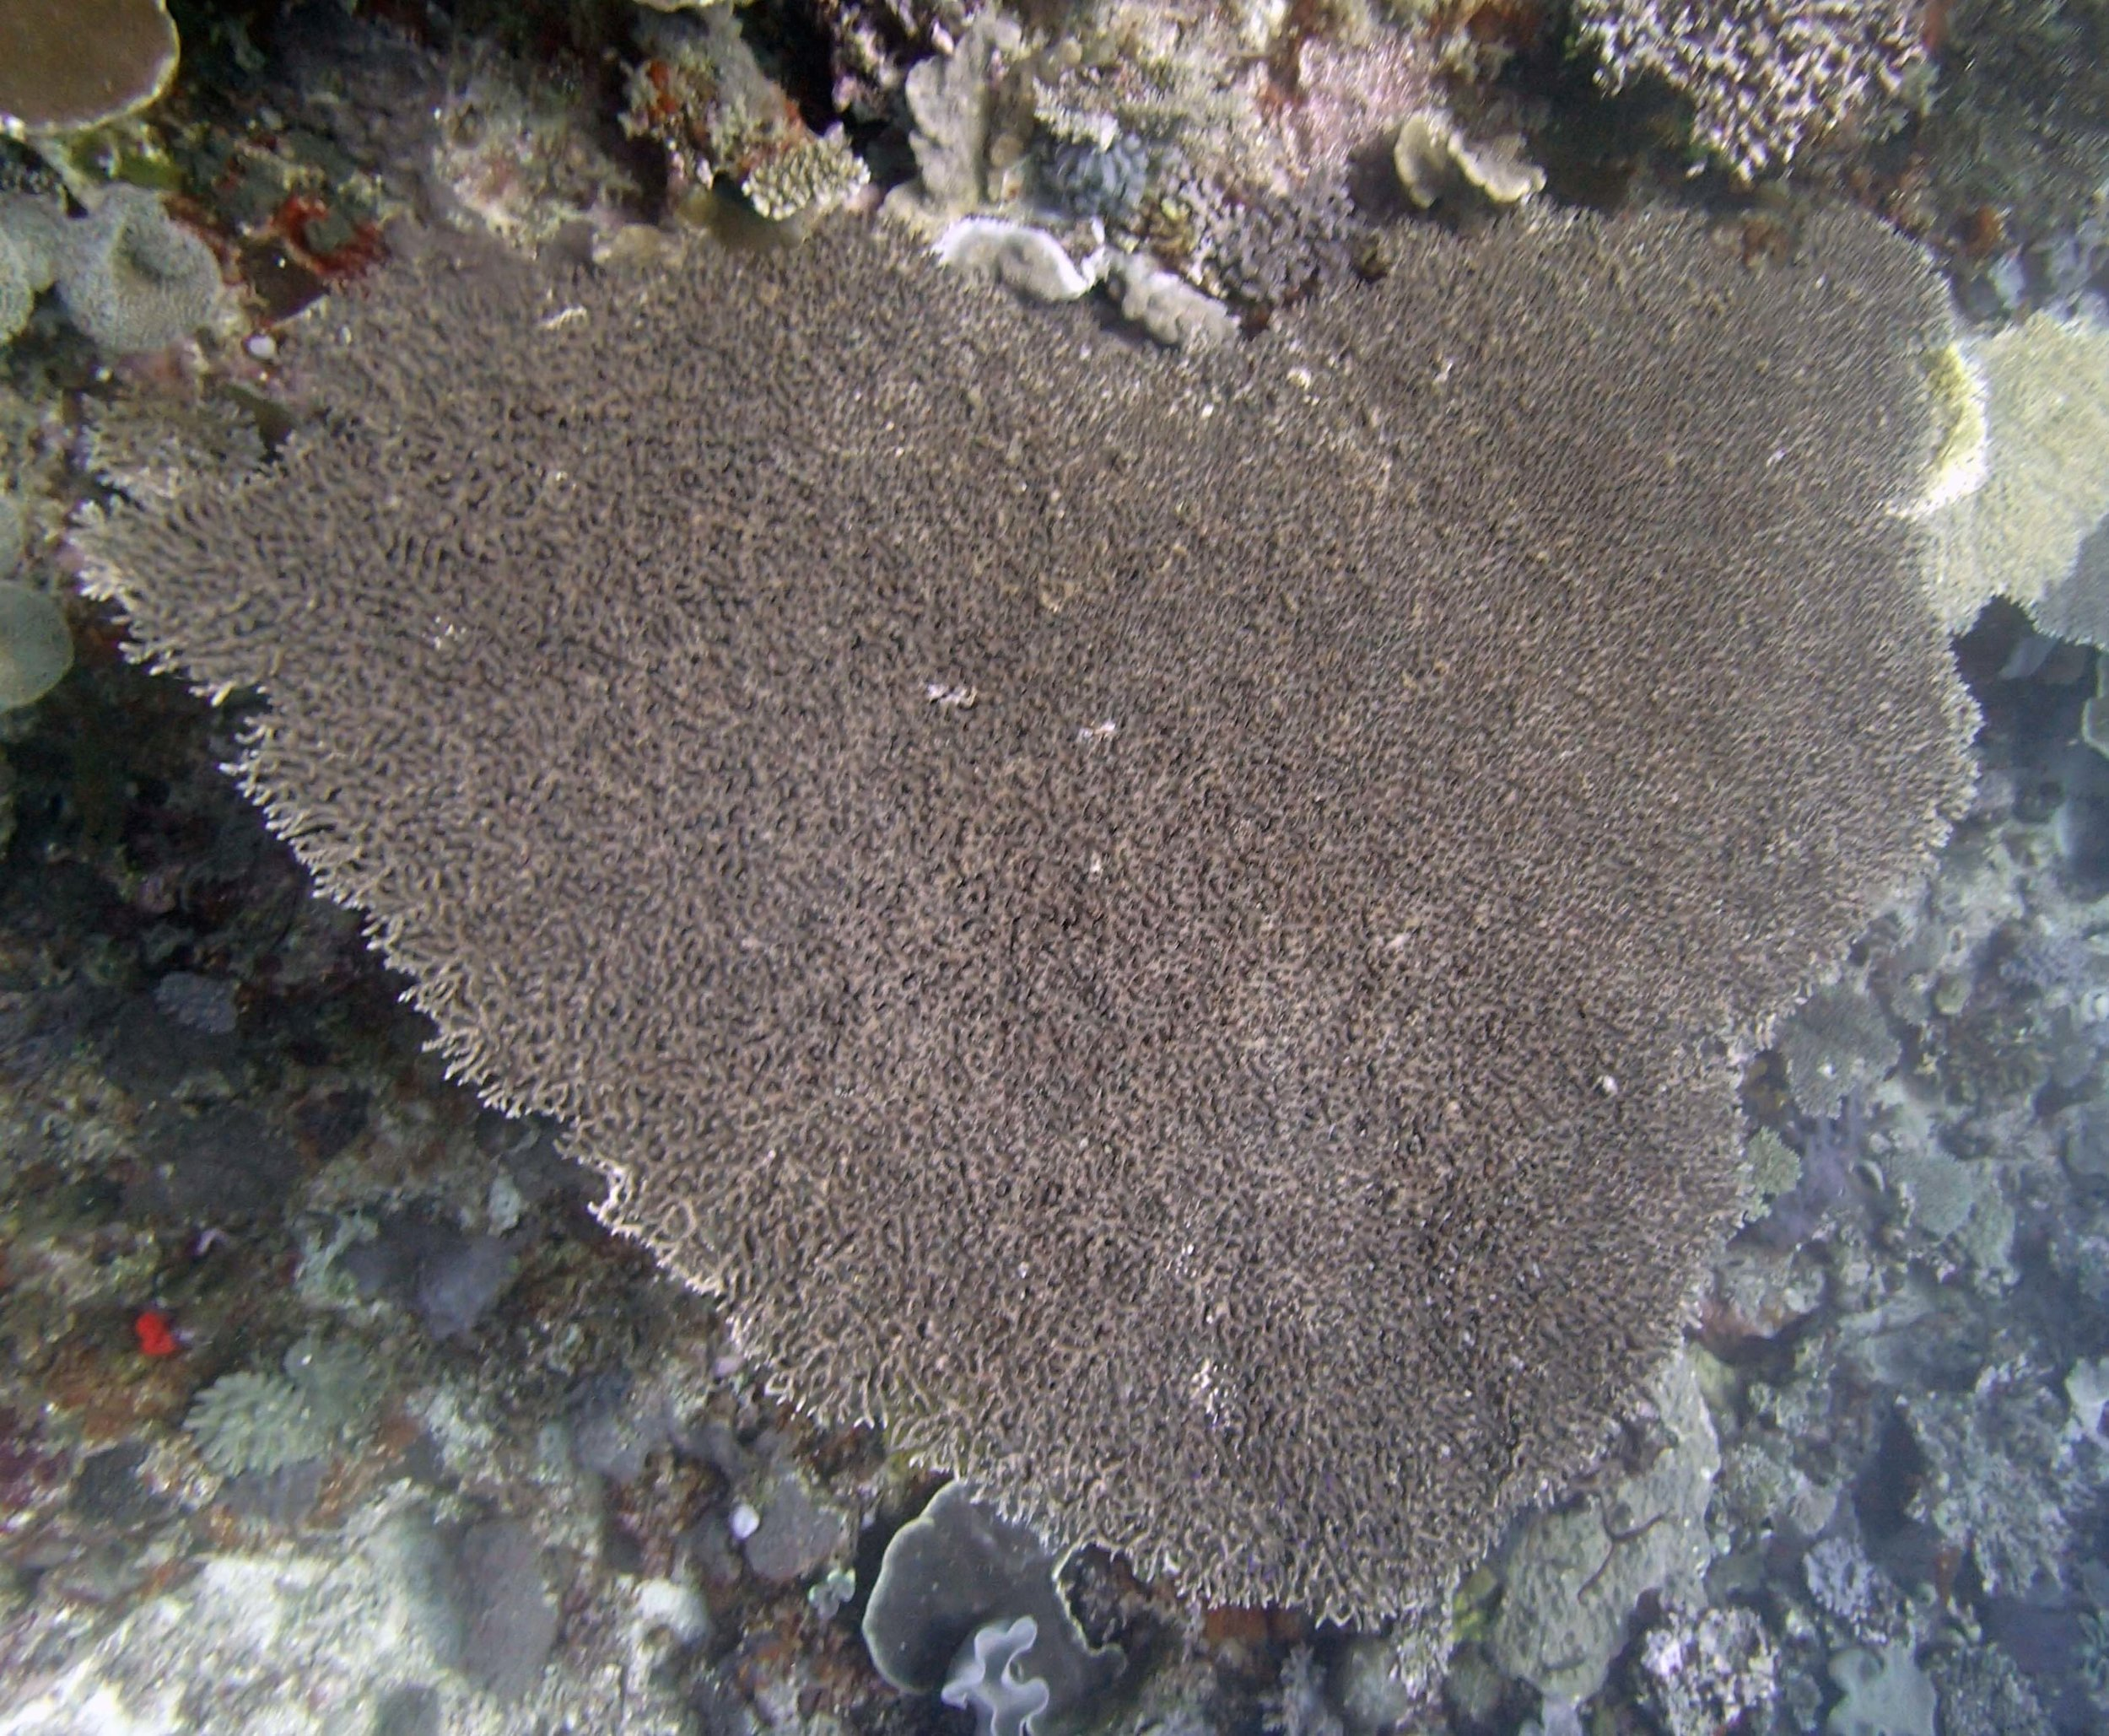 huge acropora table.jpg